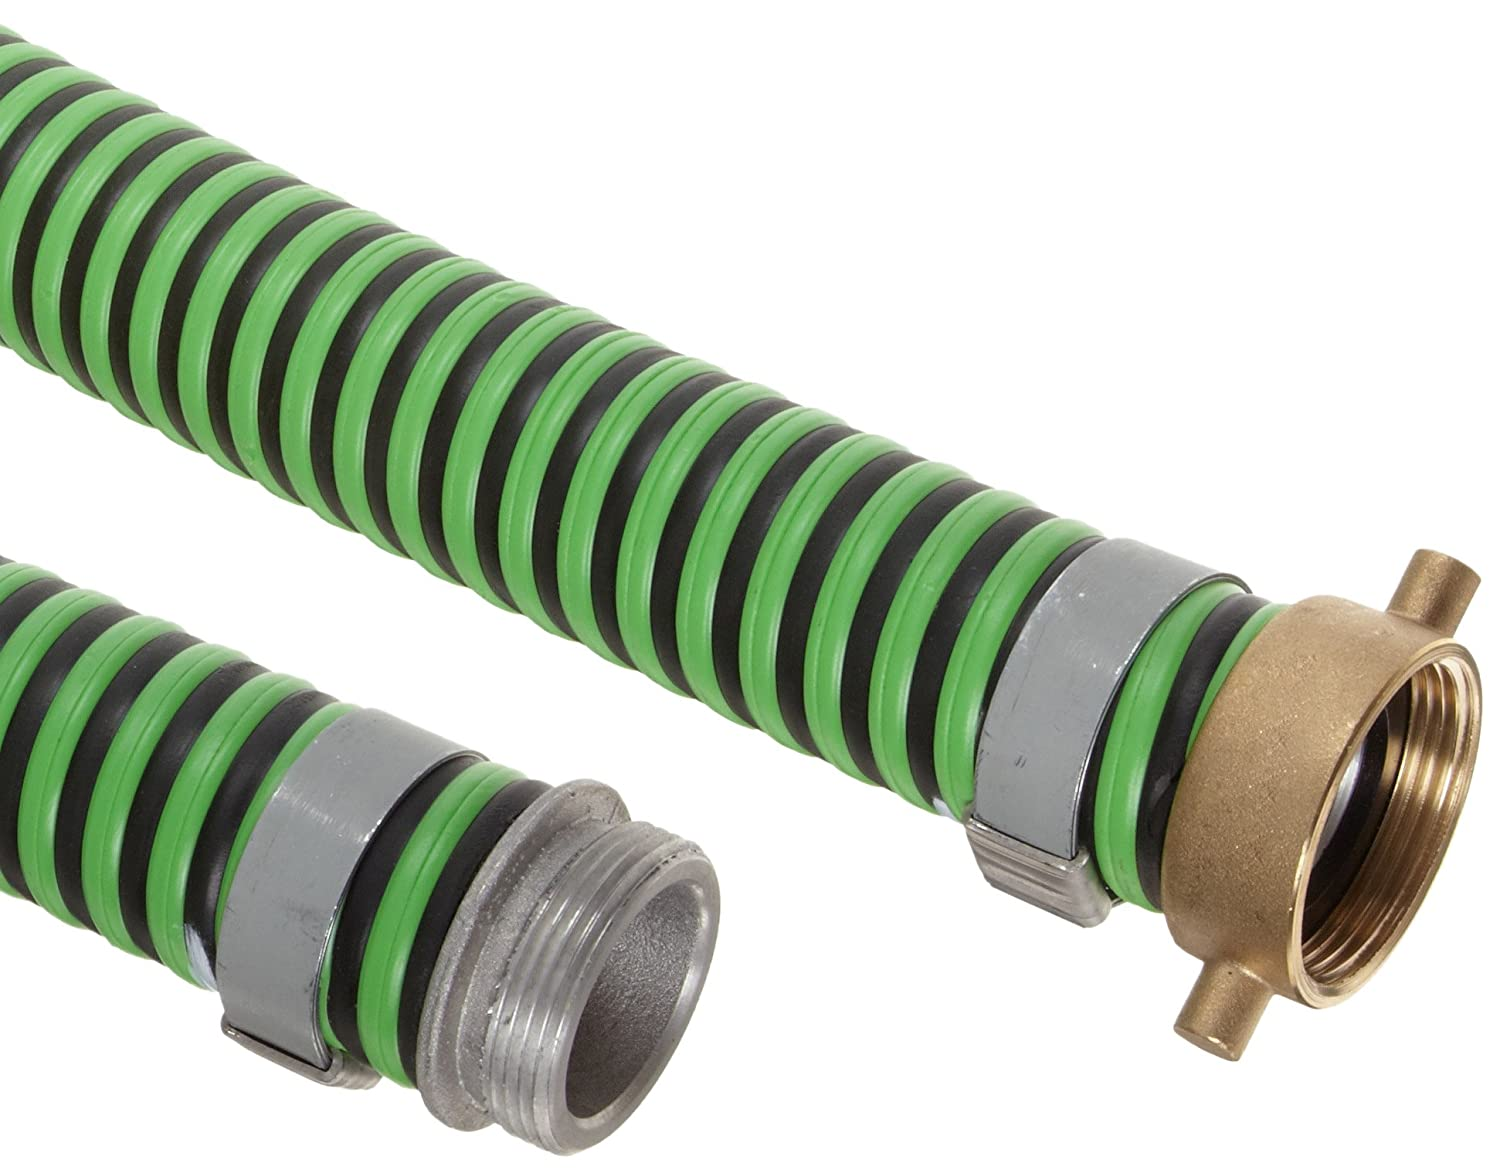 Goodyear EP Green Hornet XF Rubber Suction//Discharge Hose Assembly 2 Aluminum Male x Brass Female Swivel Connection 50 PSI Maximum Pressure 20 Length 2 ID 2 Aluminum Male x Brass Female Swivel Connection 20/' Length 2 ID GH200-20MF-G